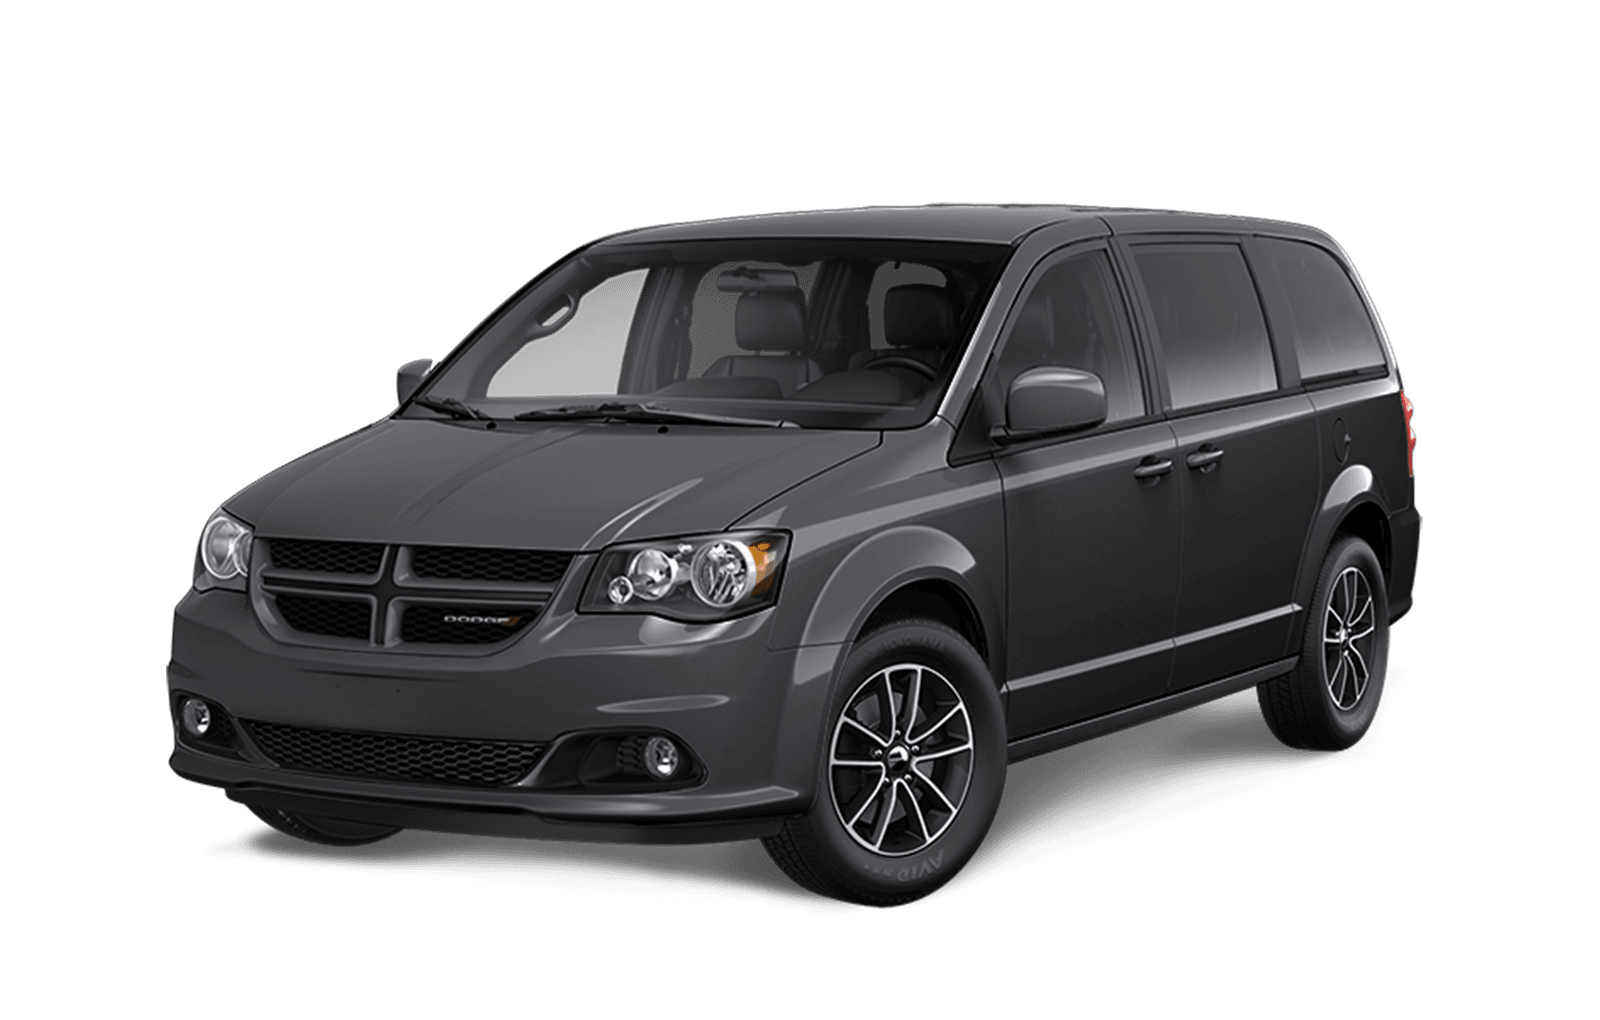 73 The New 2019 Dodge Caravan Gt Overview And Price Pricing for New 2019 Dodge Caravan Gt Overview And Price